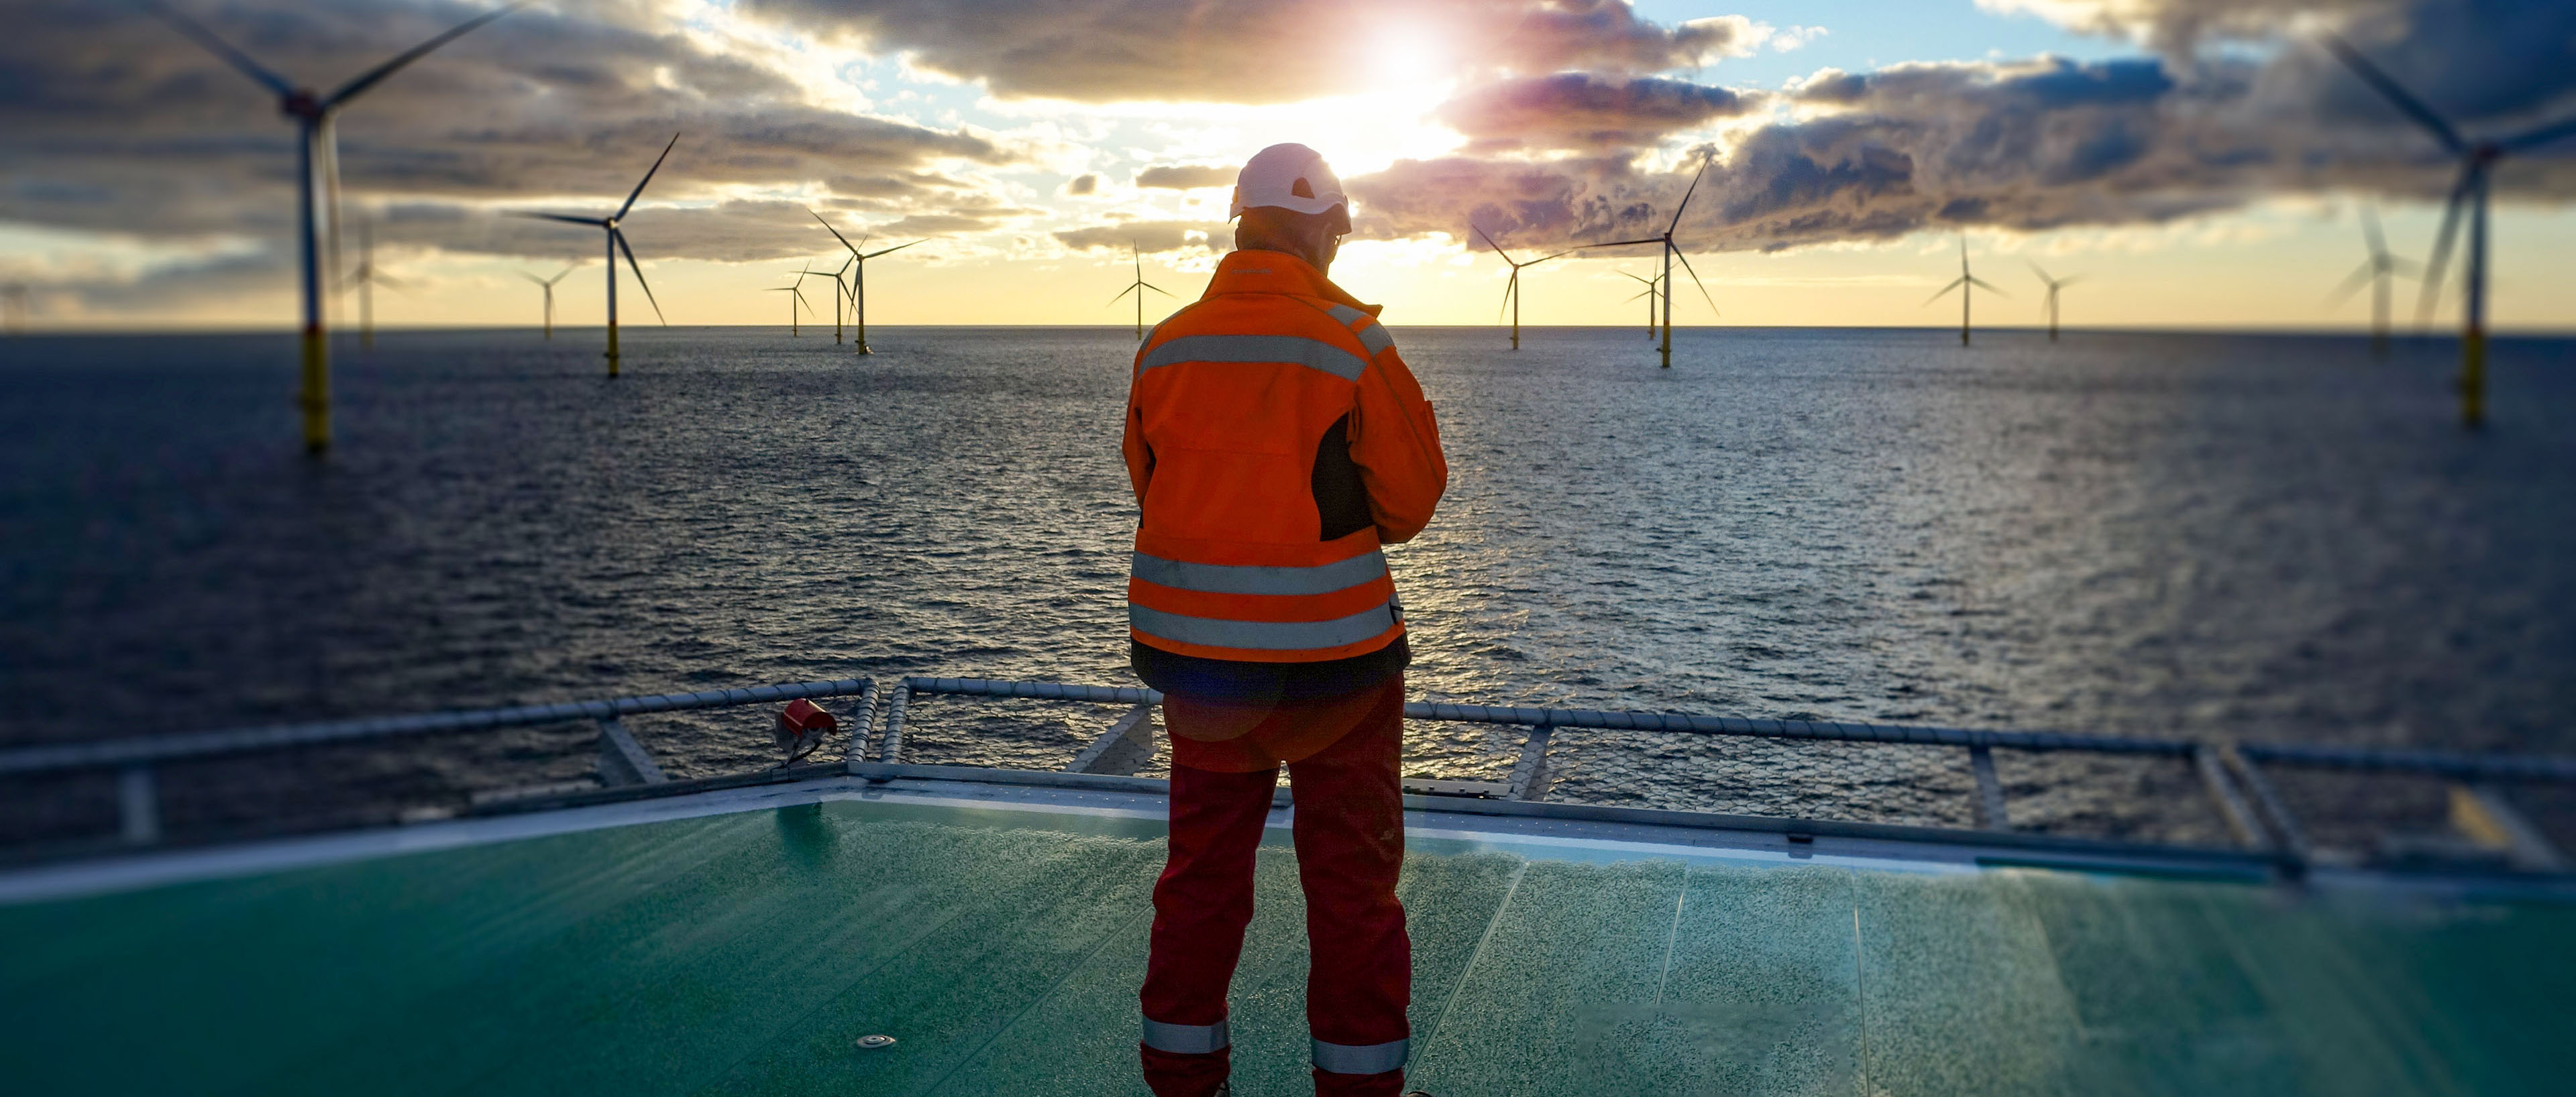 Offshore worker standing on helipad with wind-turbines behind him in sunset